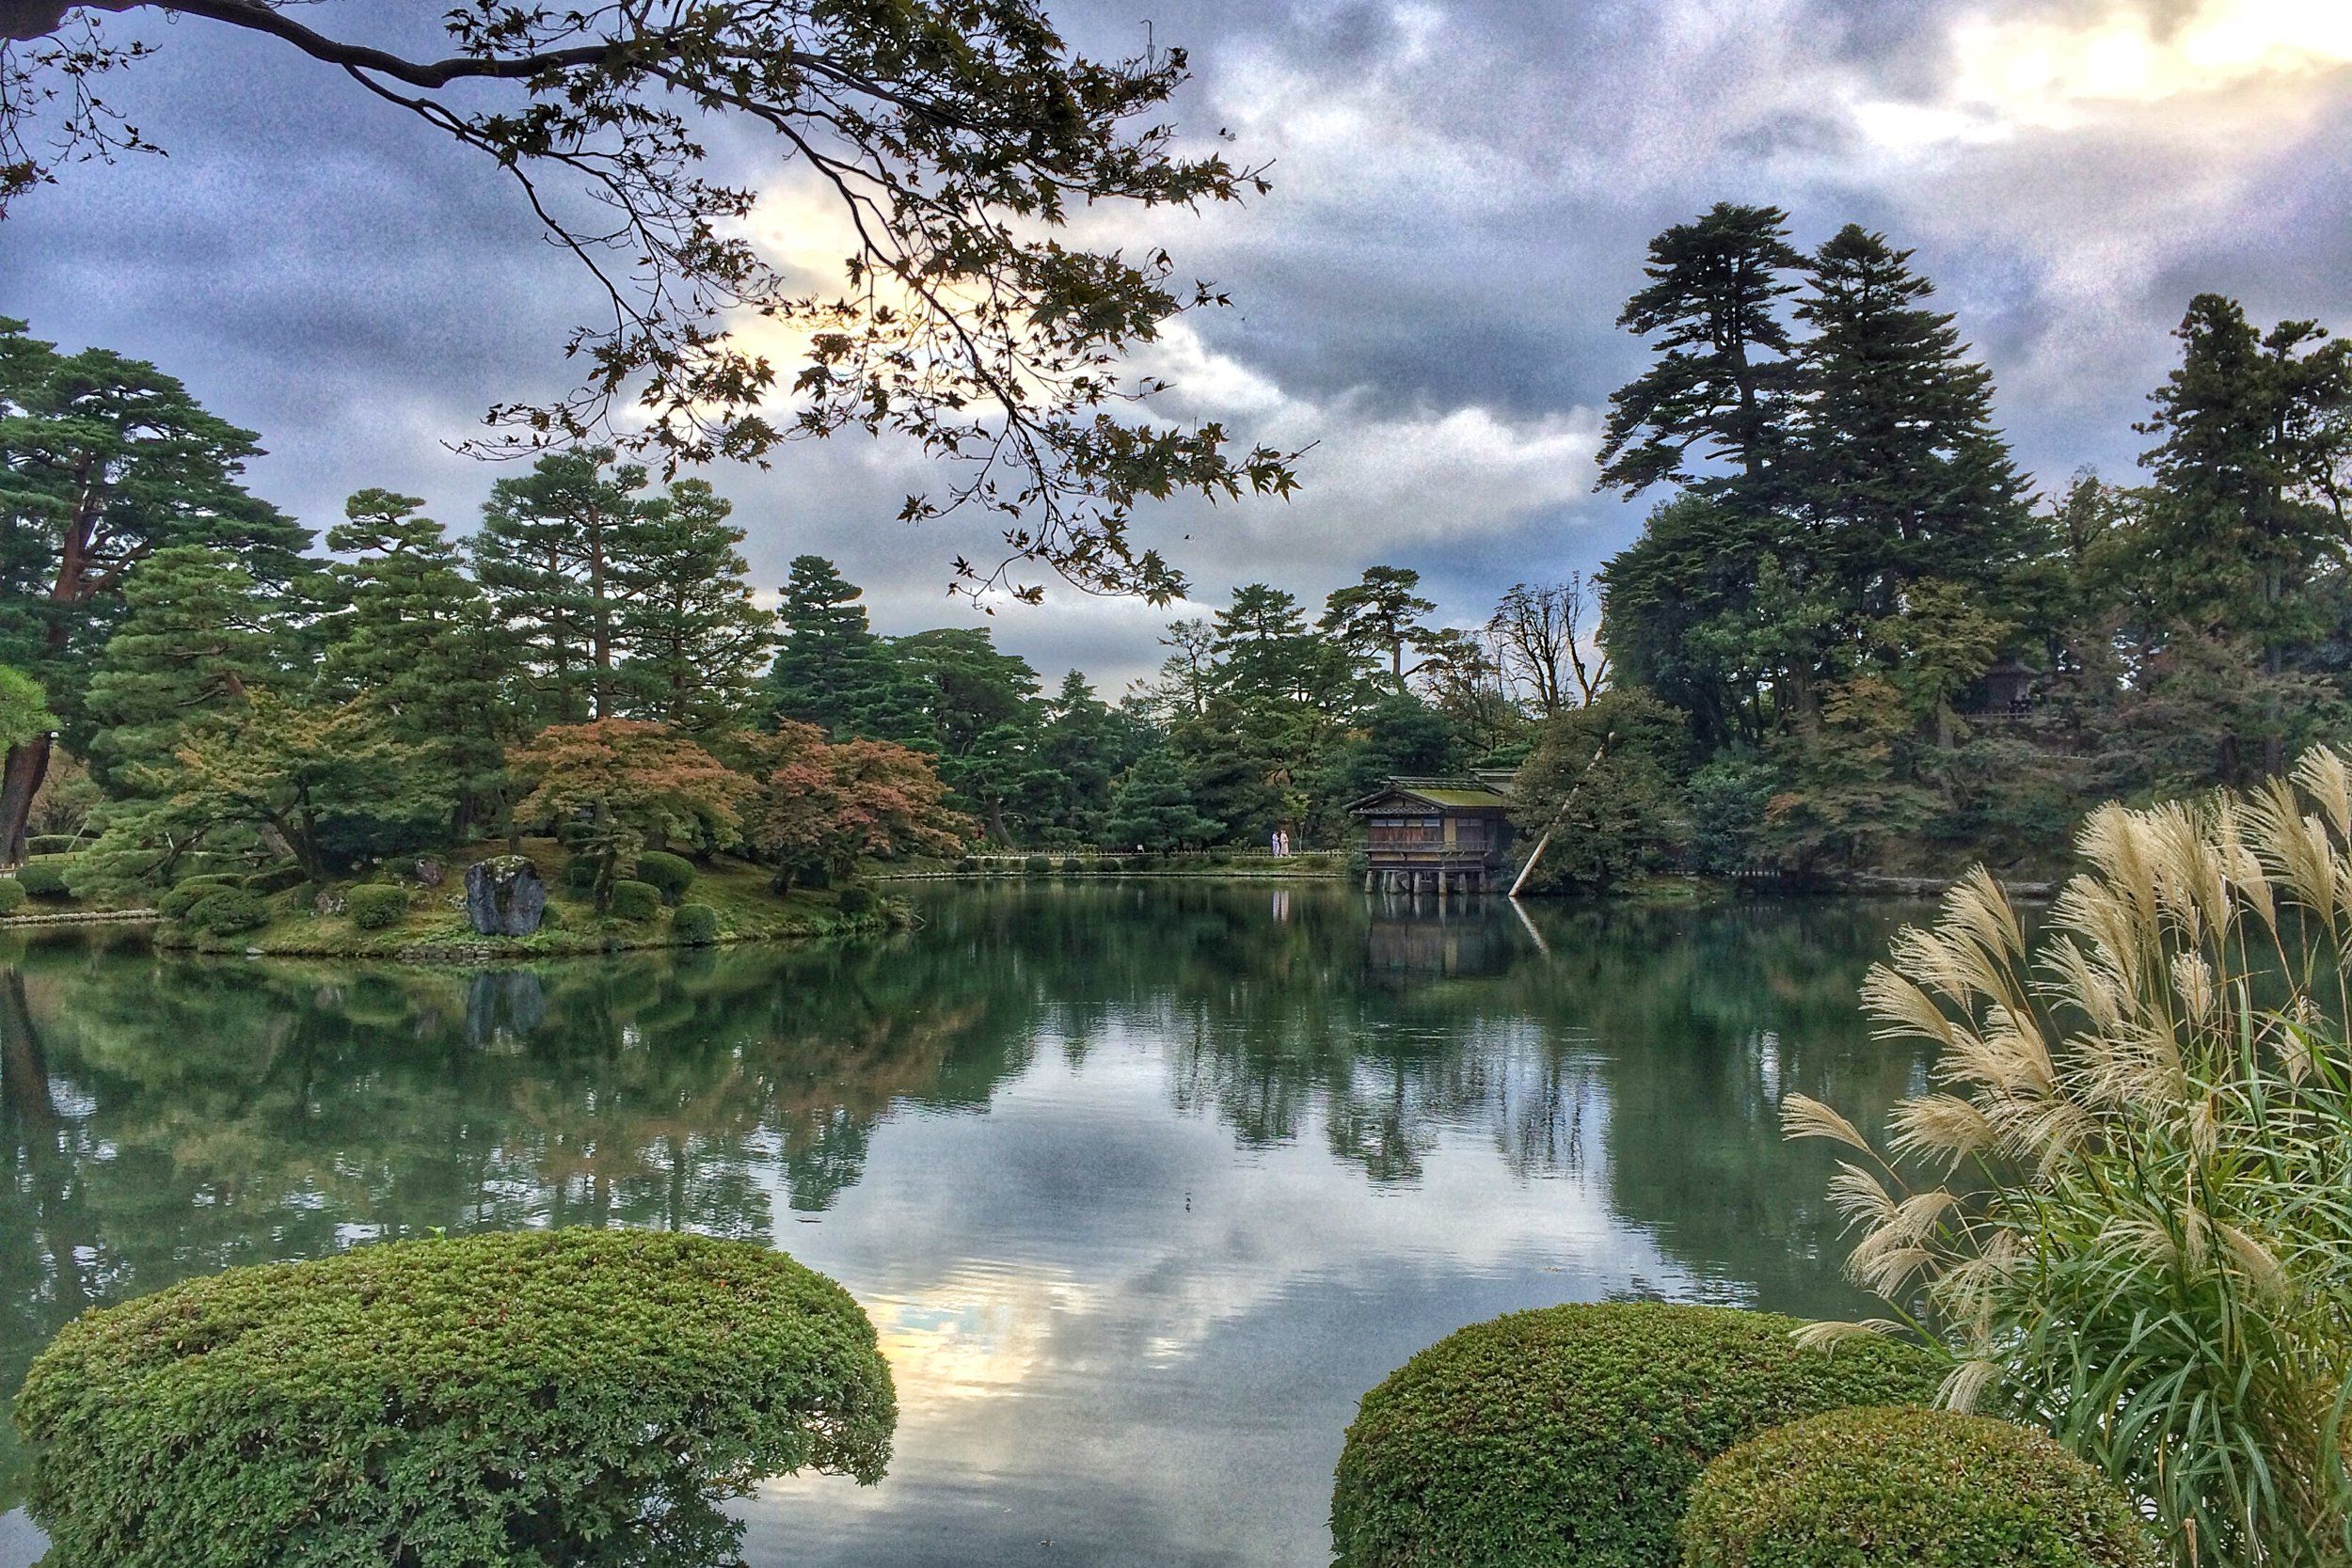 The sublimely beautiful gardens of Kenrokuen in Kanazawa, right before sunset.